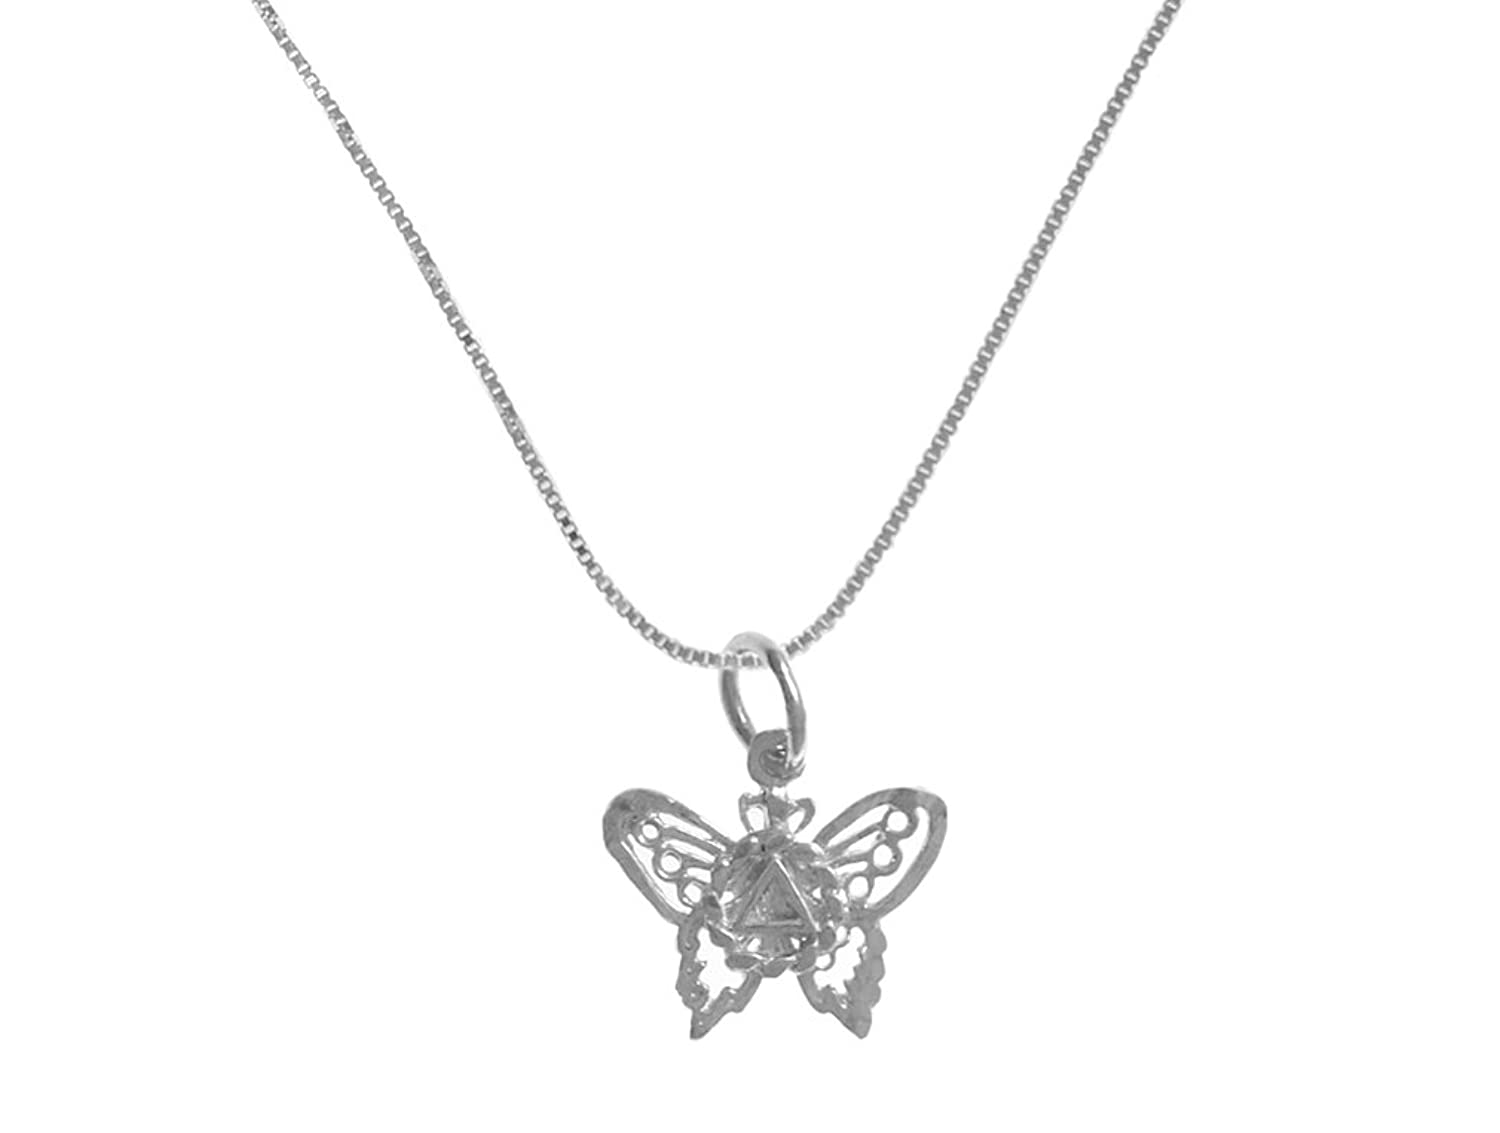 12 Step Gold Alcoholics Anonymous AA Jewelry Set, #1219, $19 - $22, AA Delicate Butterfly Pendant #978, Lt Box Chain #213, Chain Available in 3 Lengths